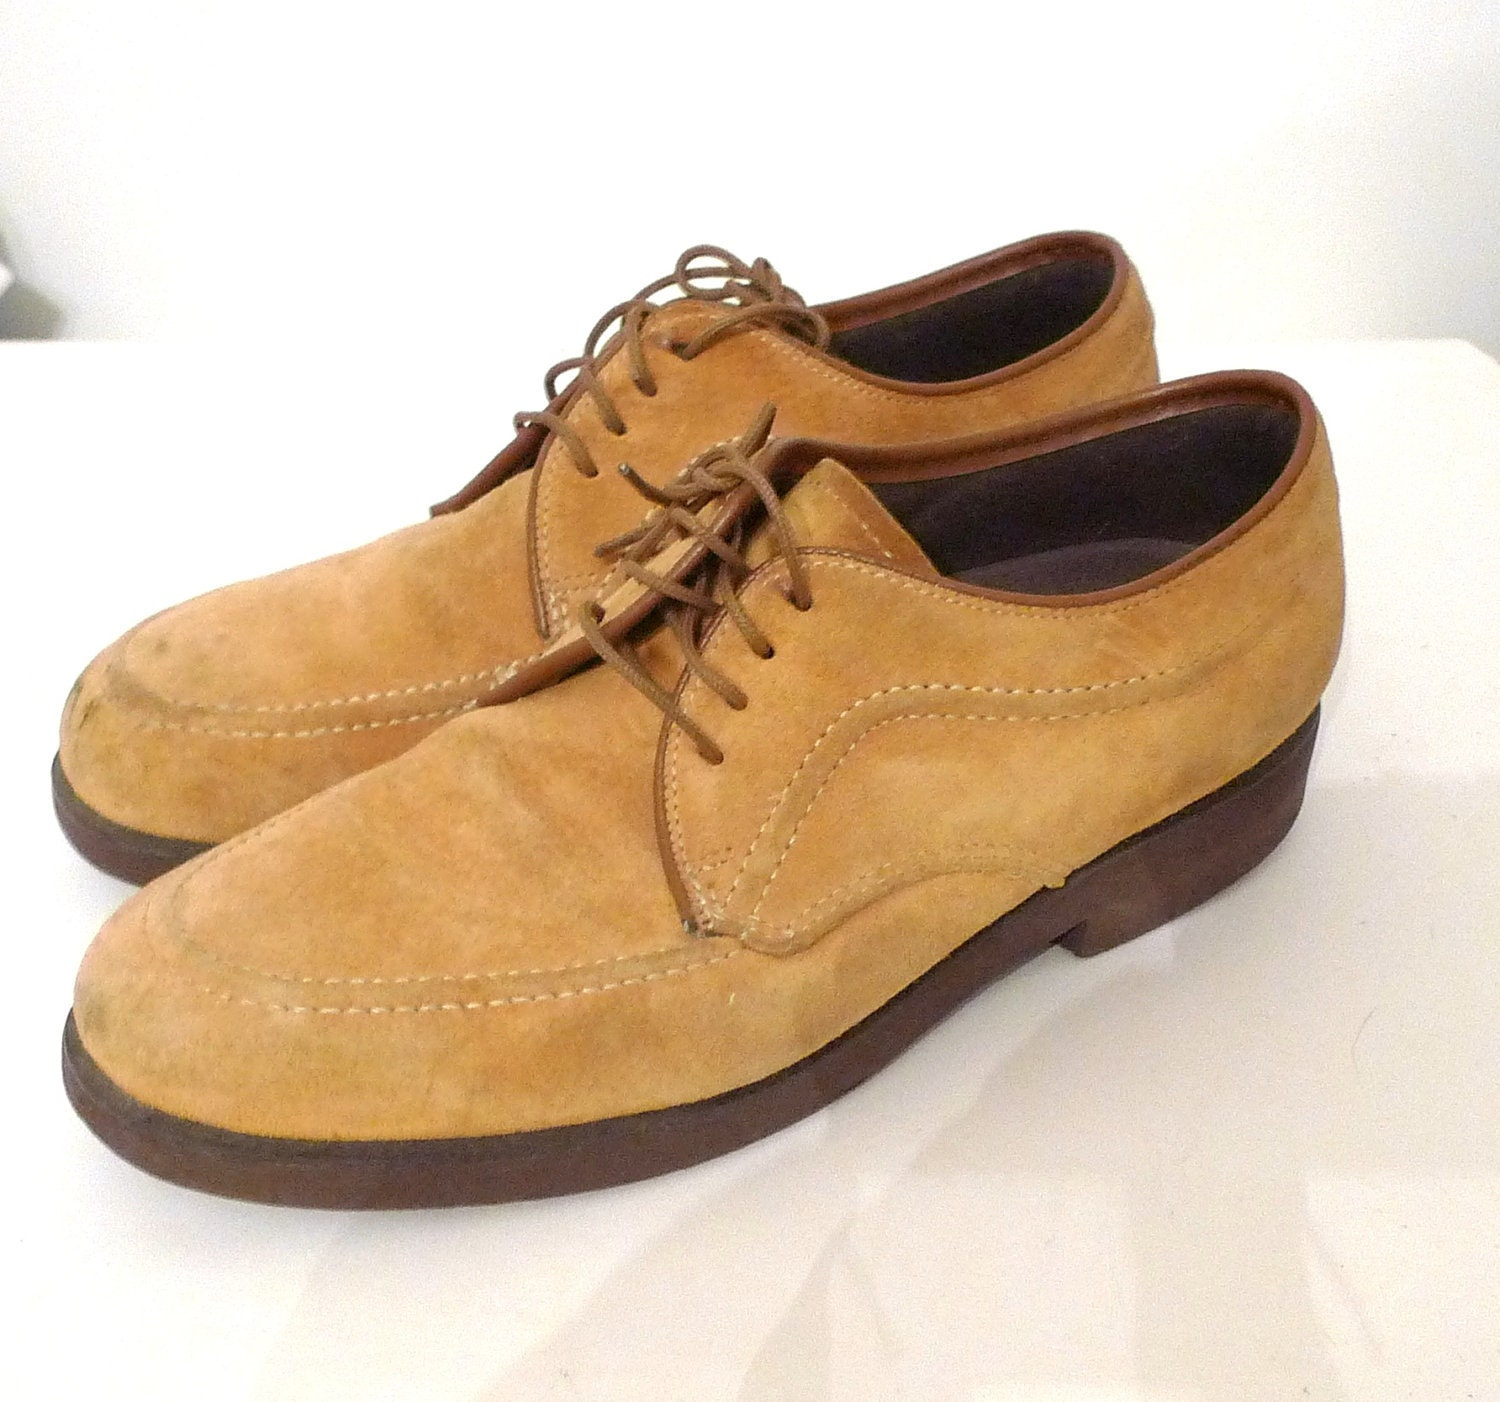 Hush Puppies Oxfords Suede Creepers Fawn Colored Brogues